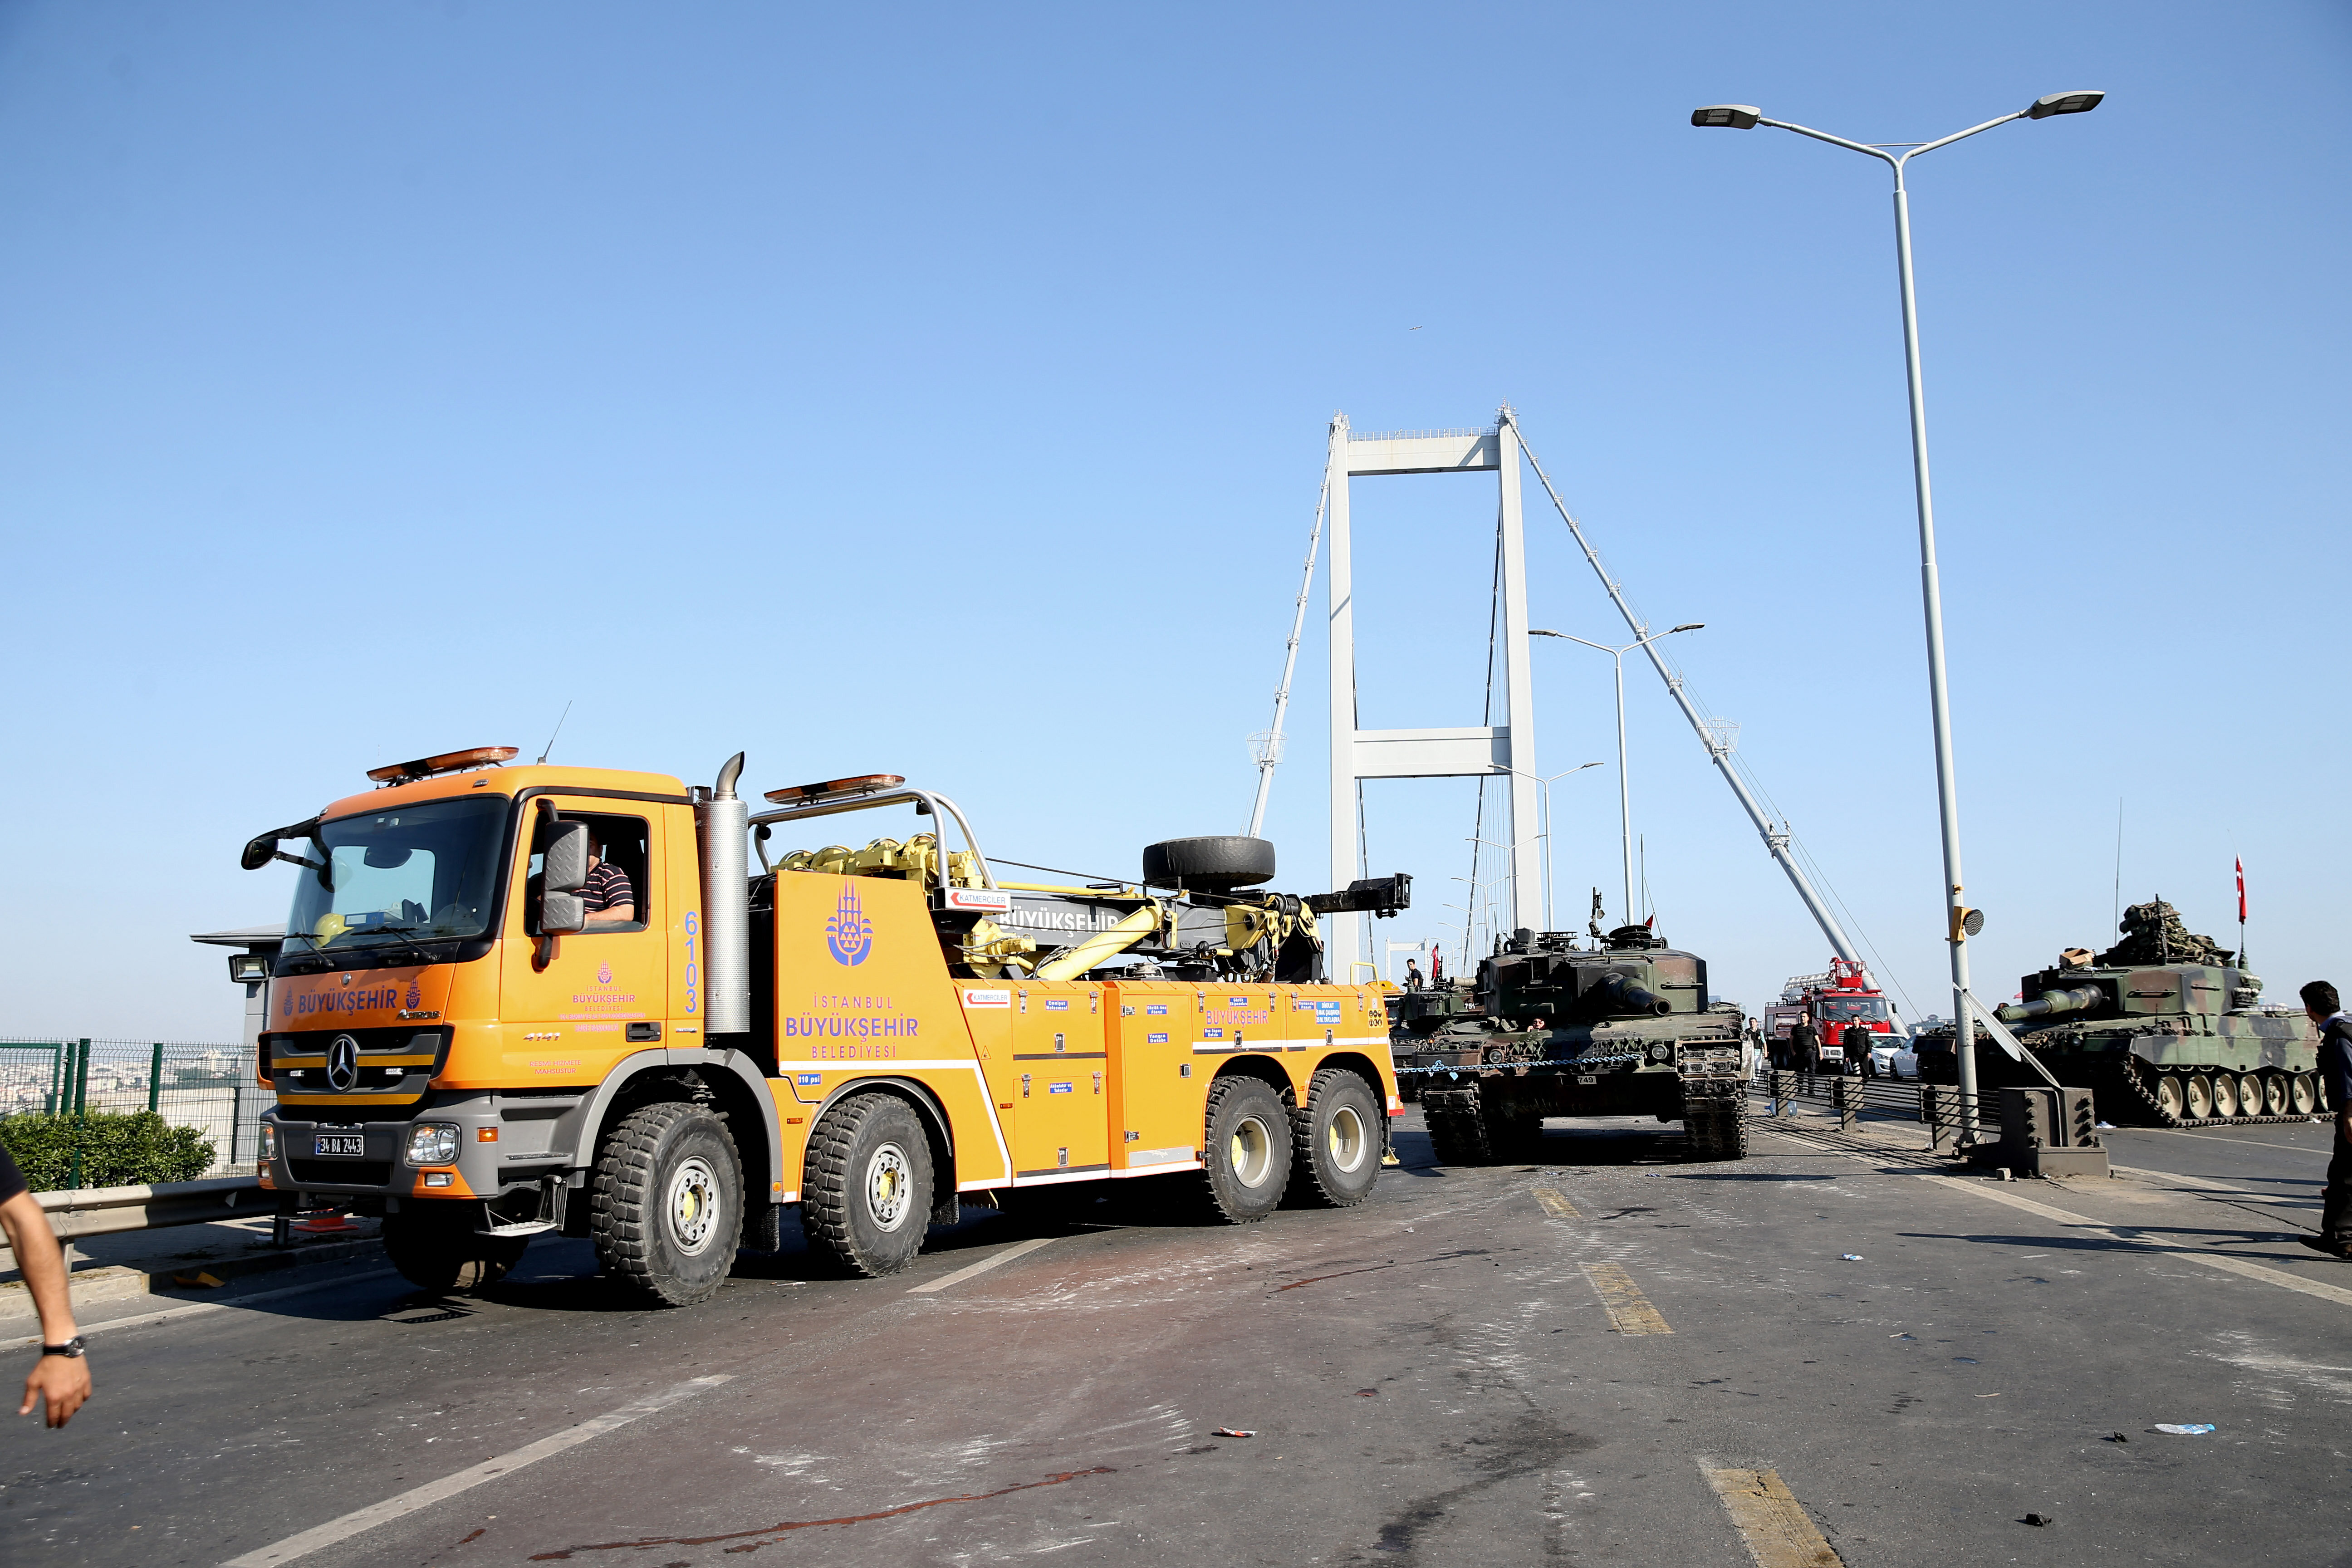 13Both bridges were opened to traffic after police removed the tanks on the Fatih Sultan Mehmet and Bosporus Bridges.